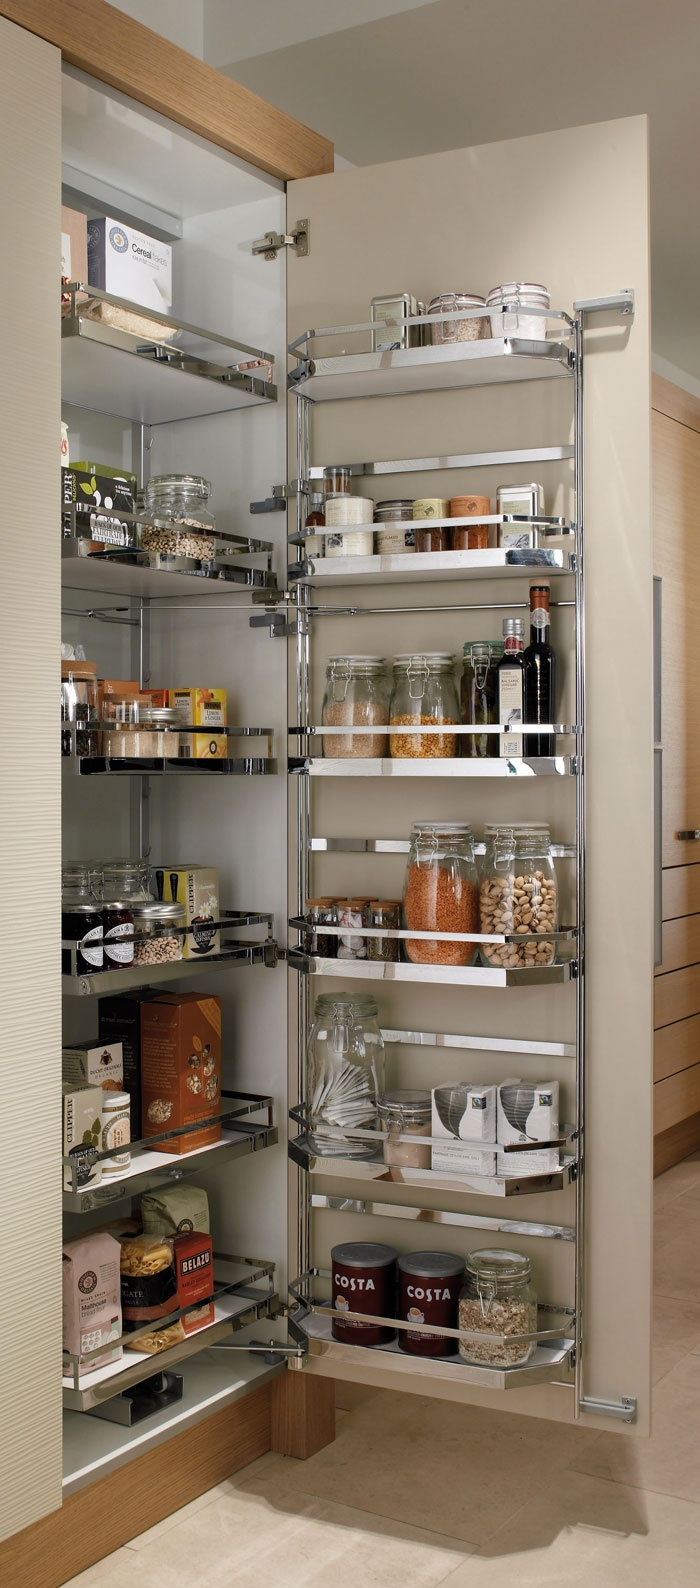 A pull-out larder